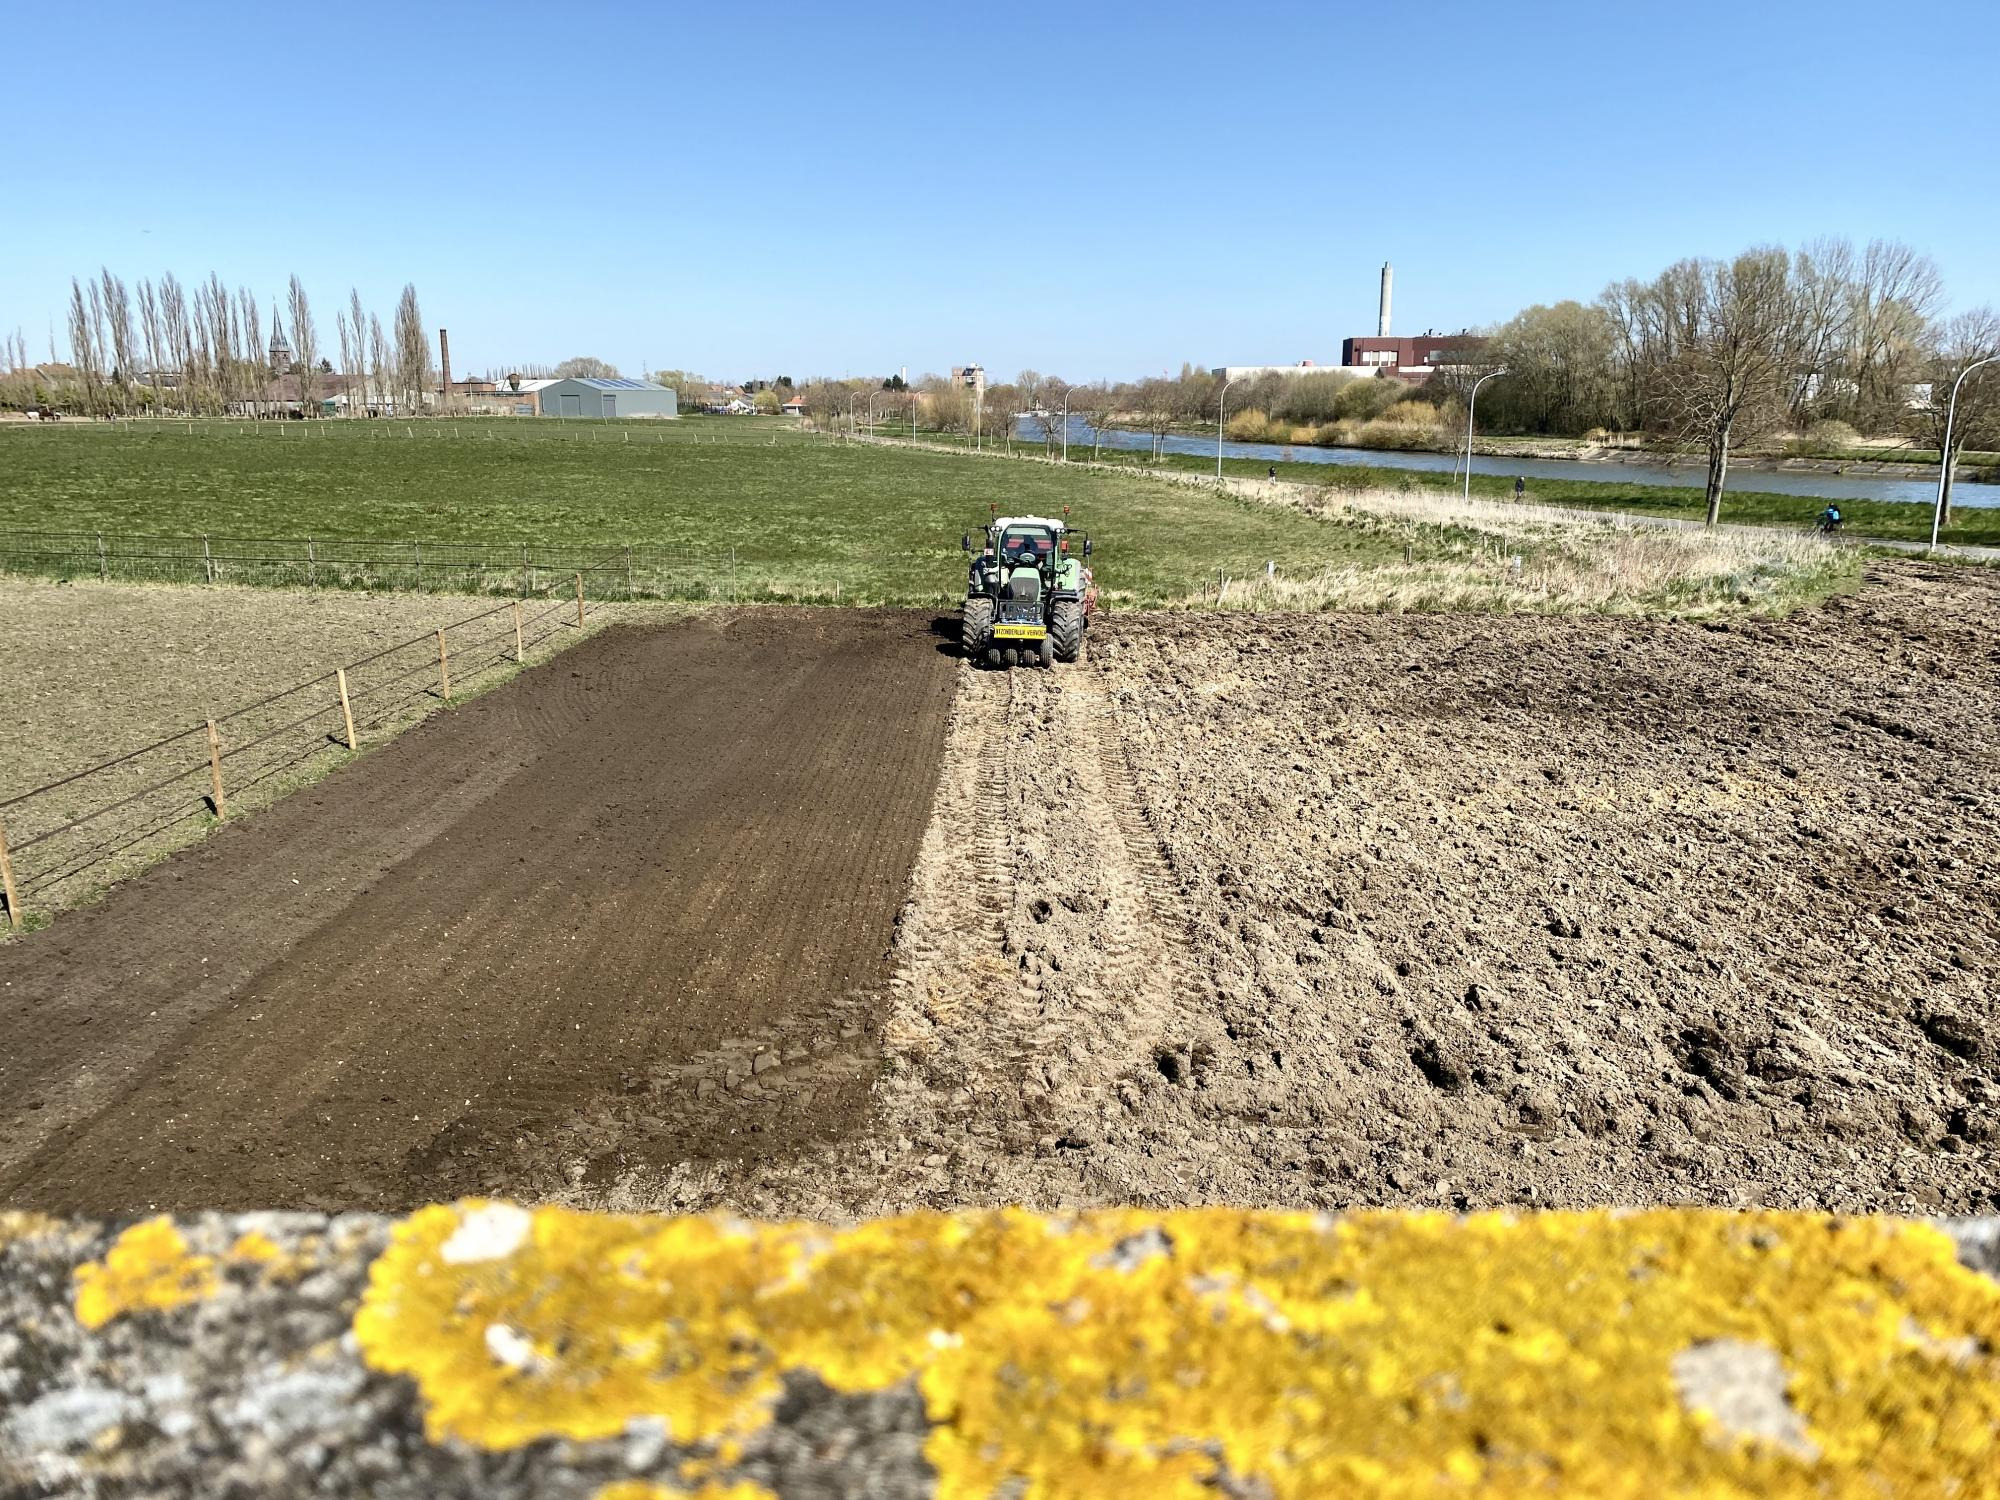 The sowing of the field next to Roterij Sabbe